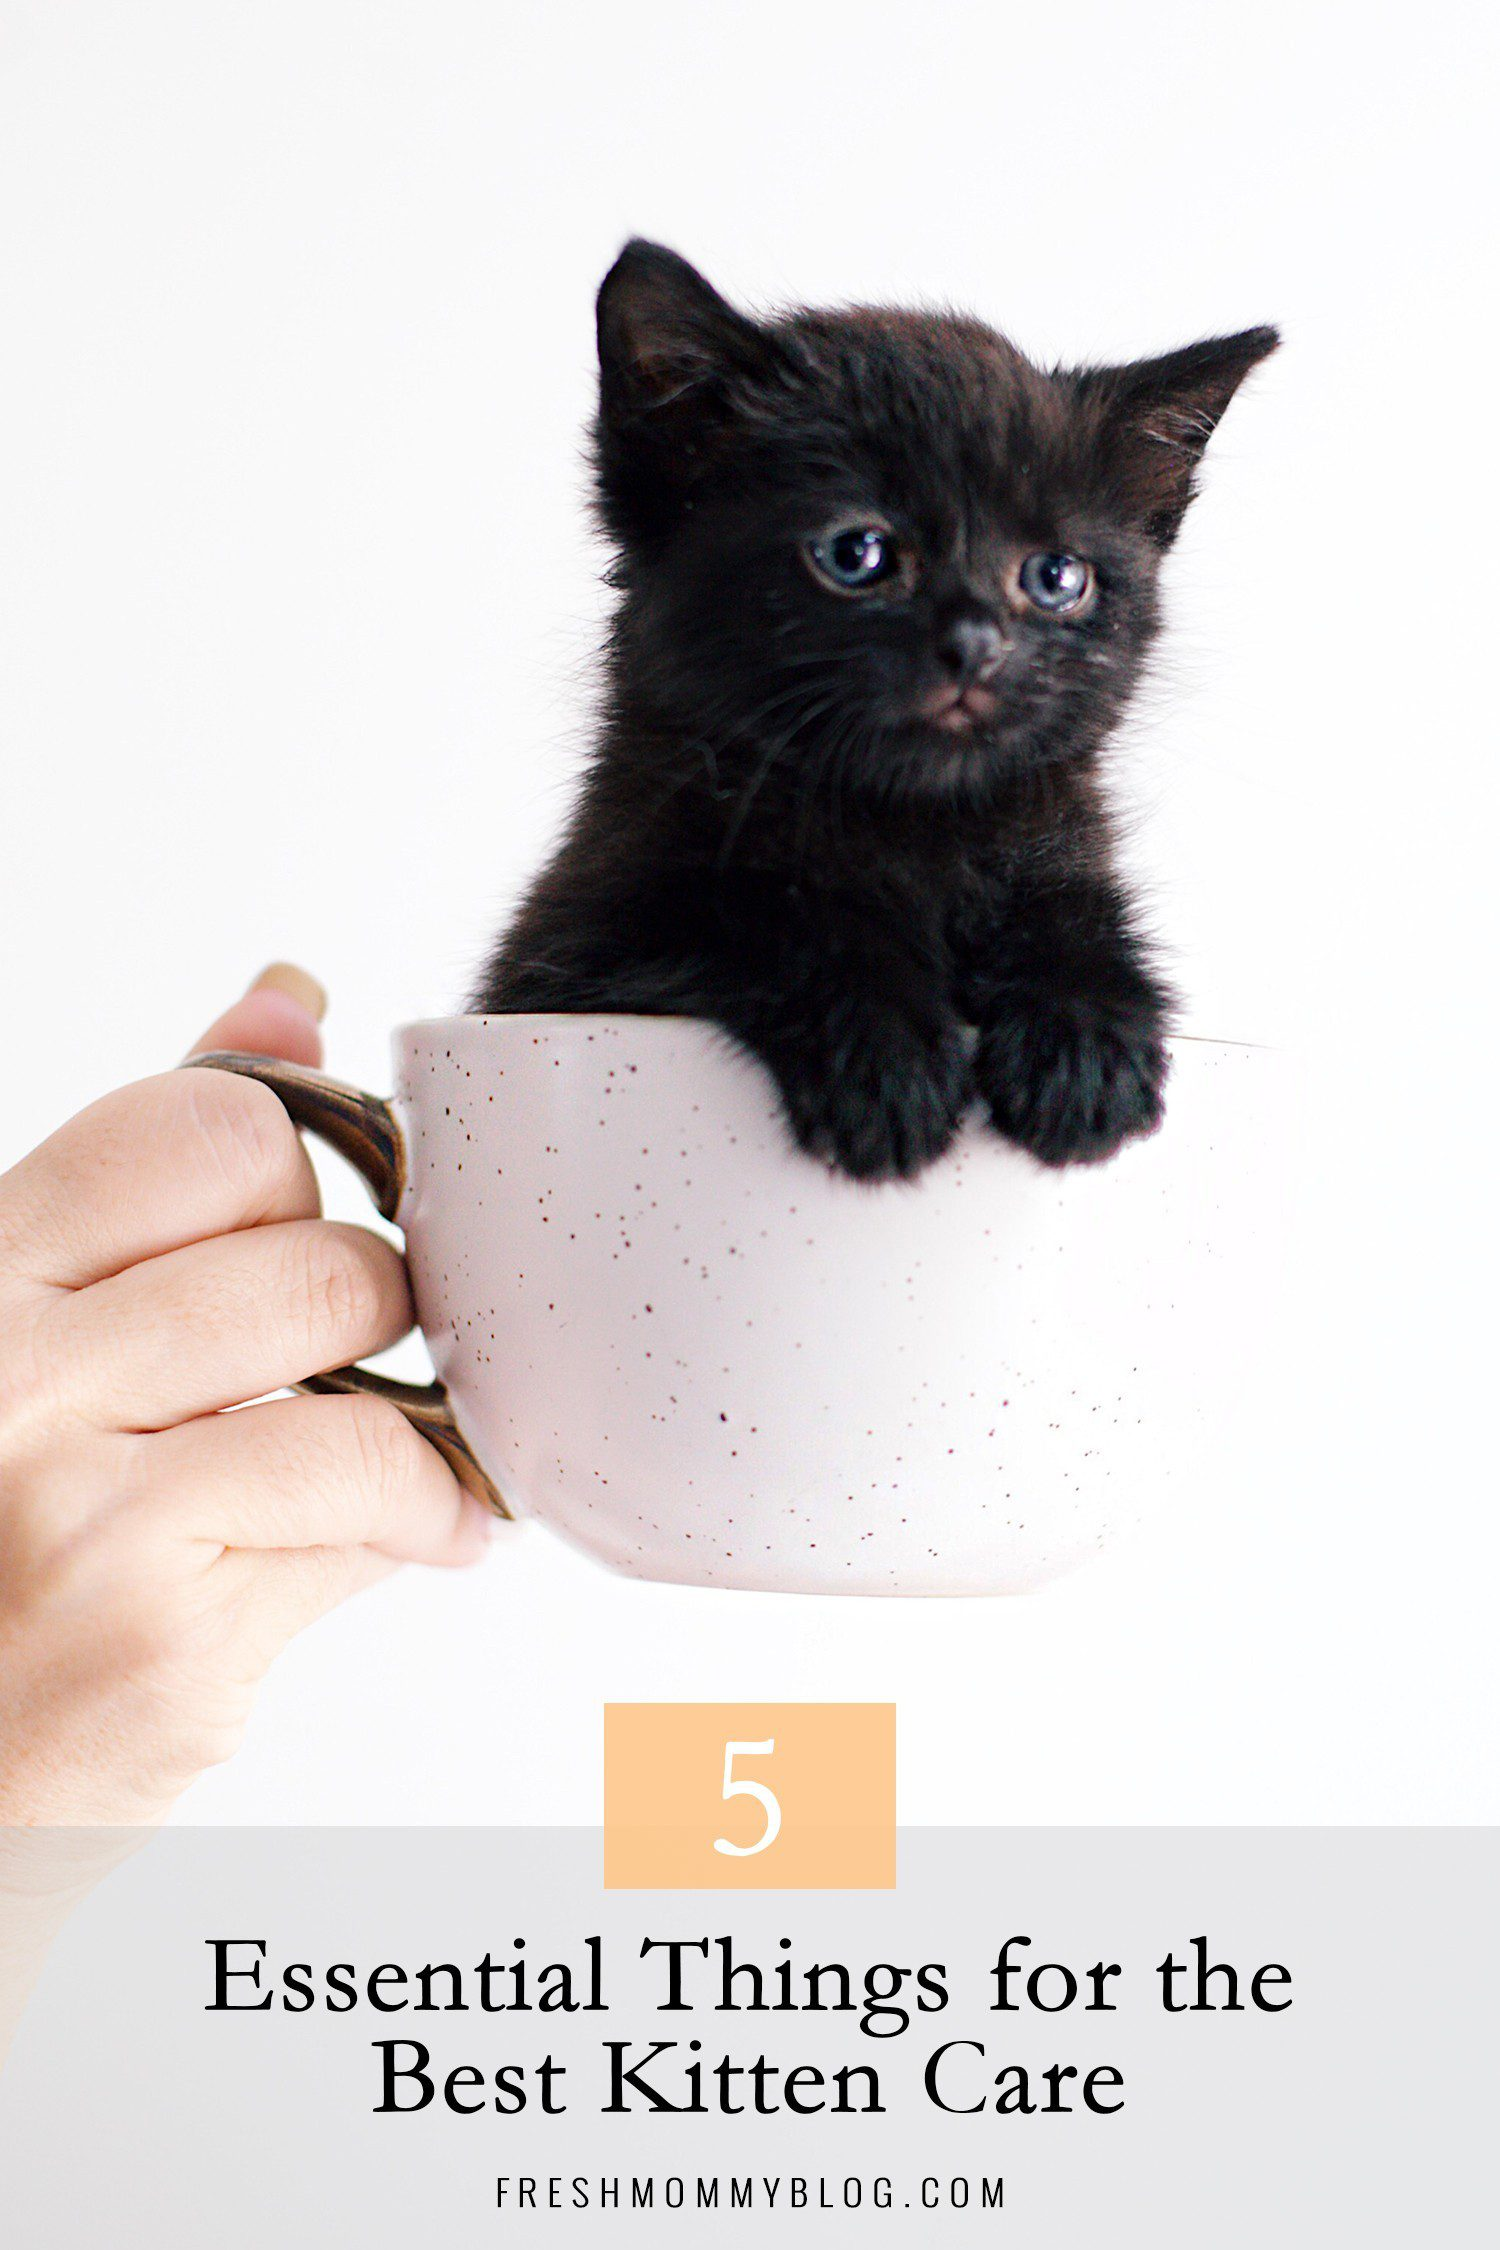 5 Essential Things for the Best Kitten Care